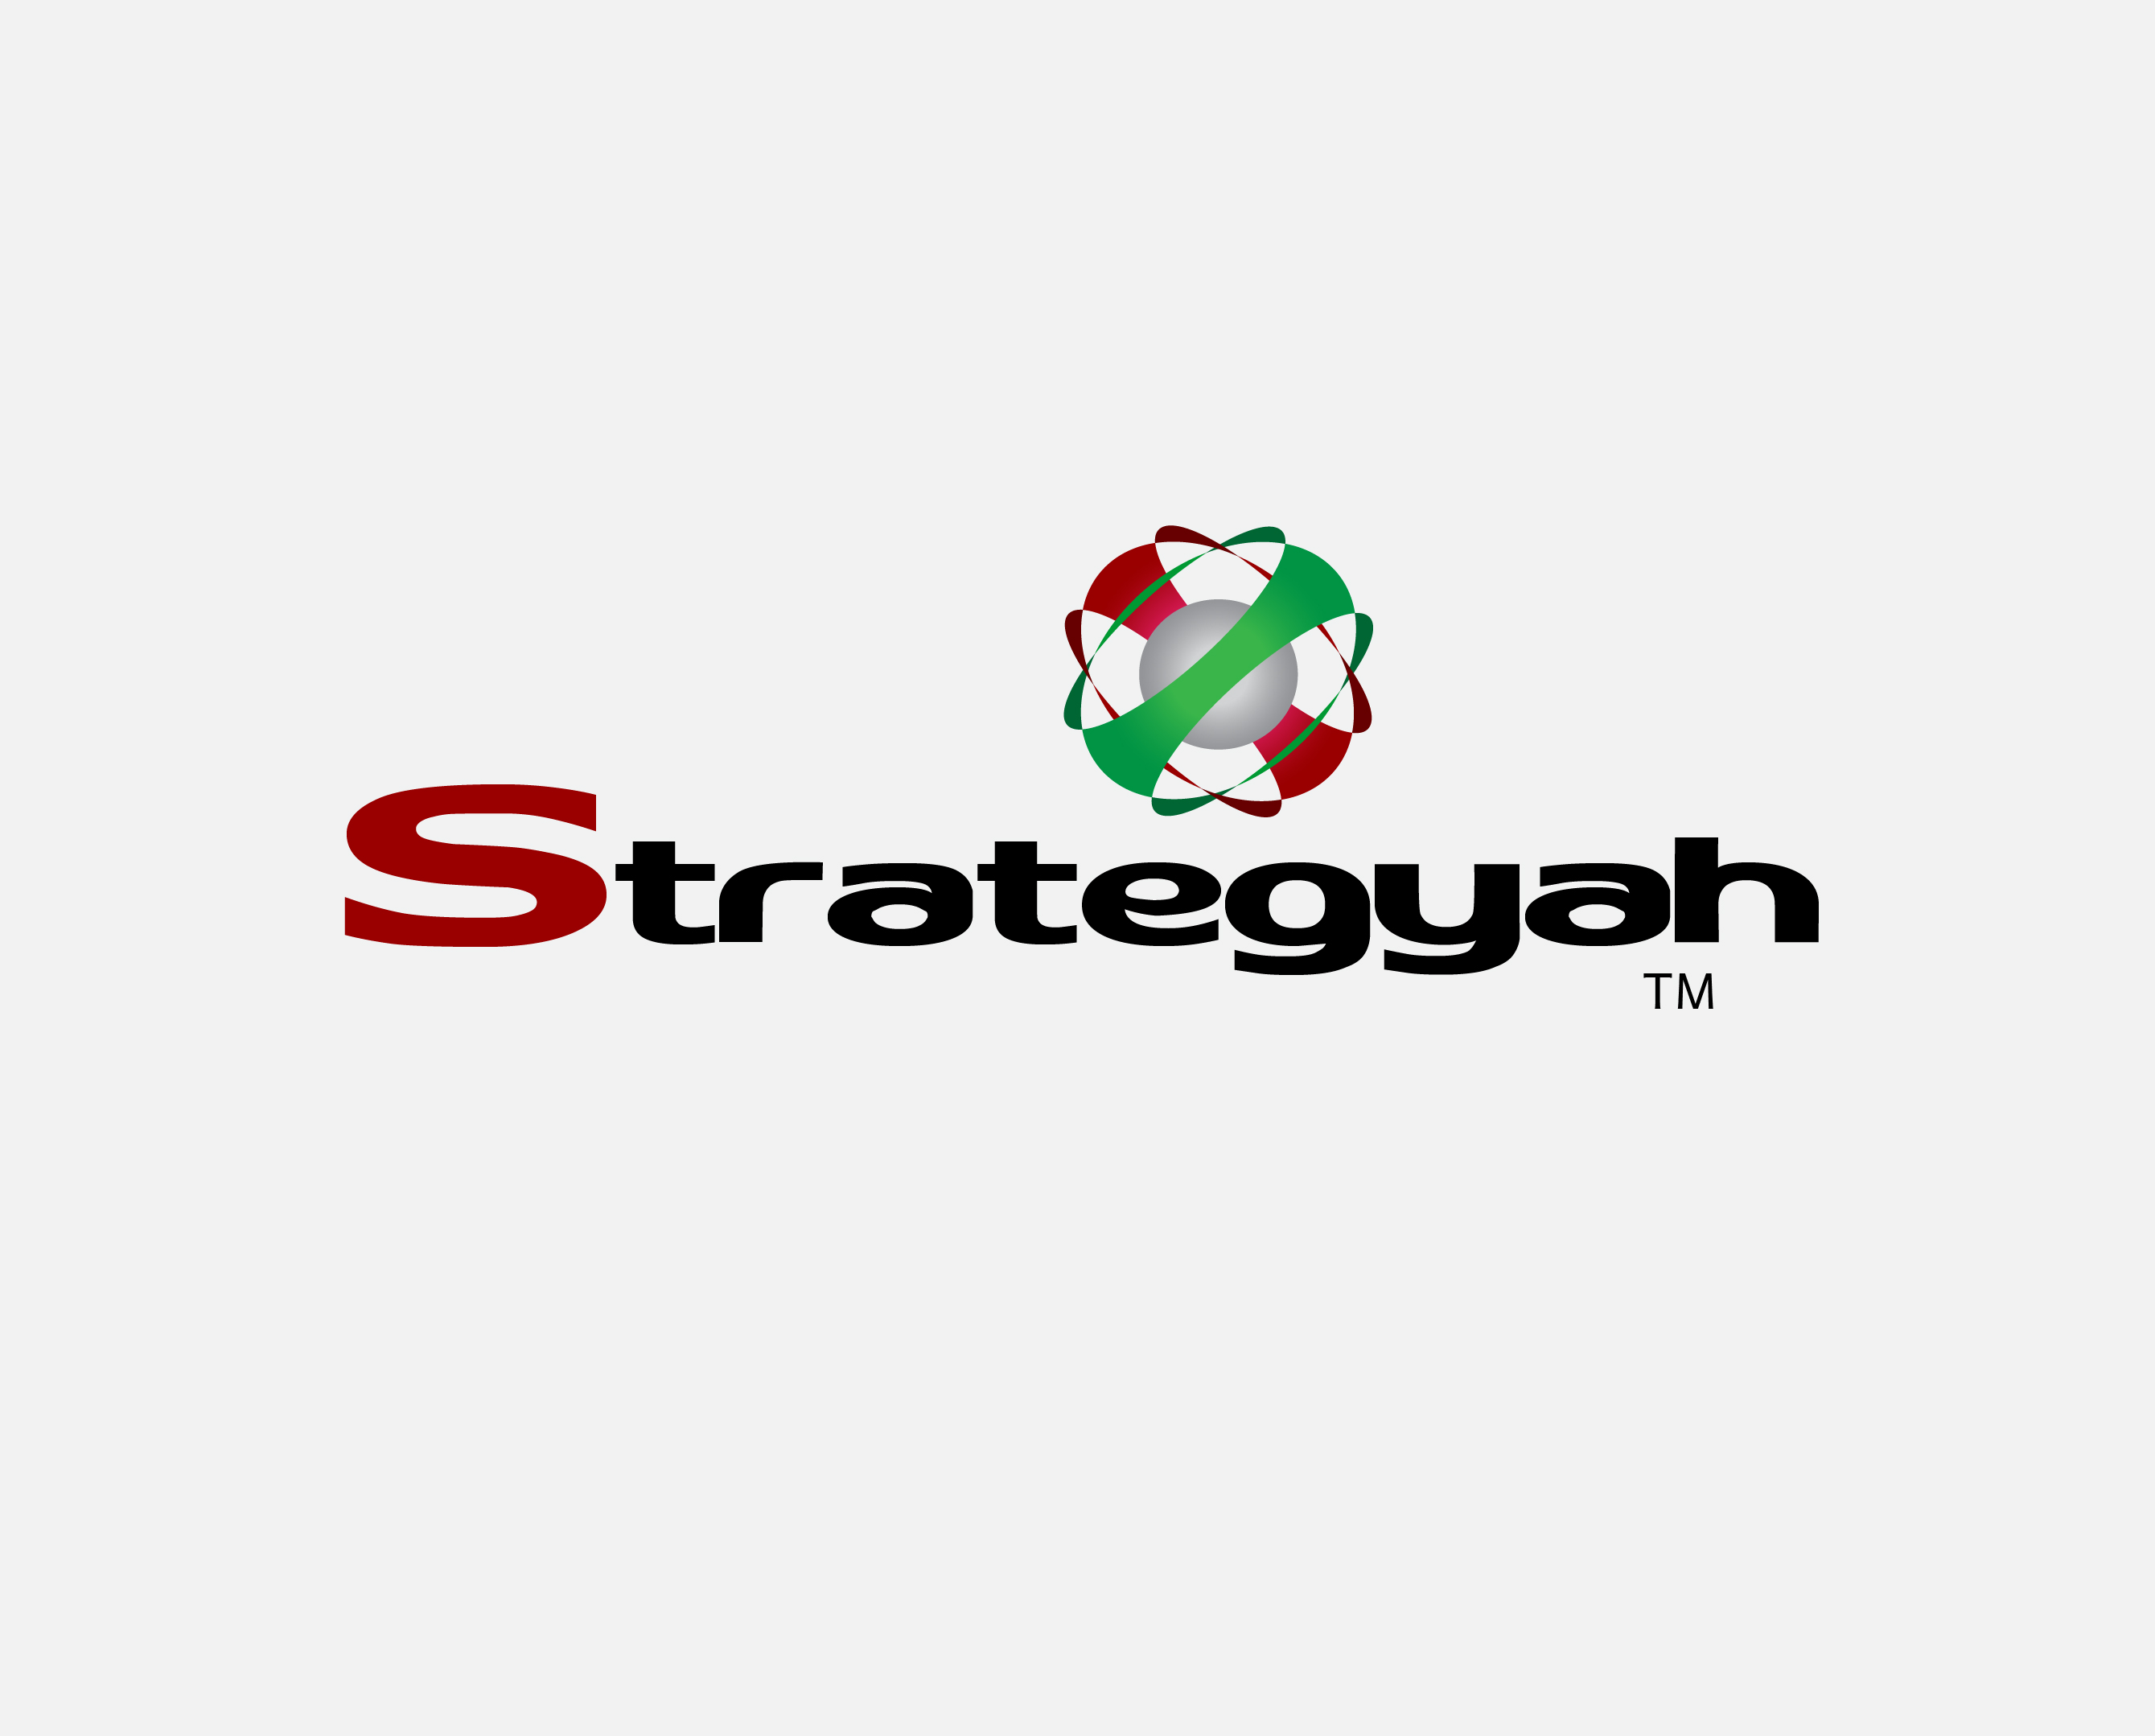 Logo Design by Nancy Grant - Entry No. 396 in the Logo Design Contest Creative Logo Design for Strategyah.